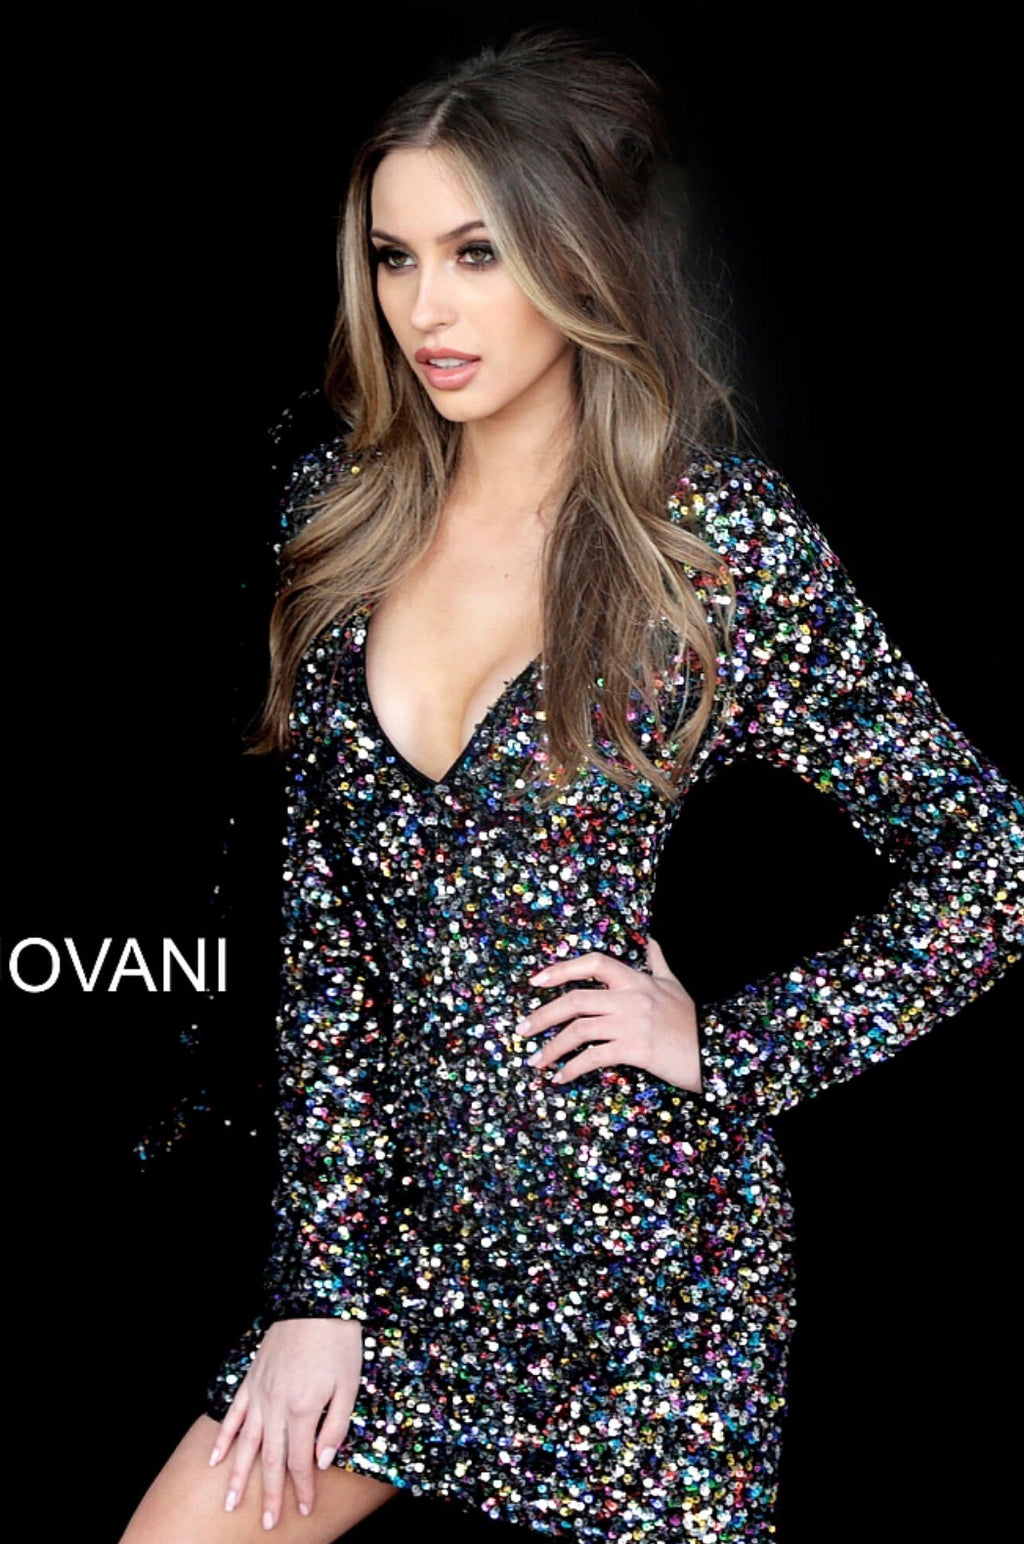 JOVANI 1899 Long Sleeve Sequined Cocktail Dress